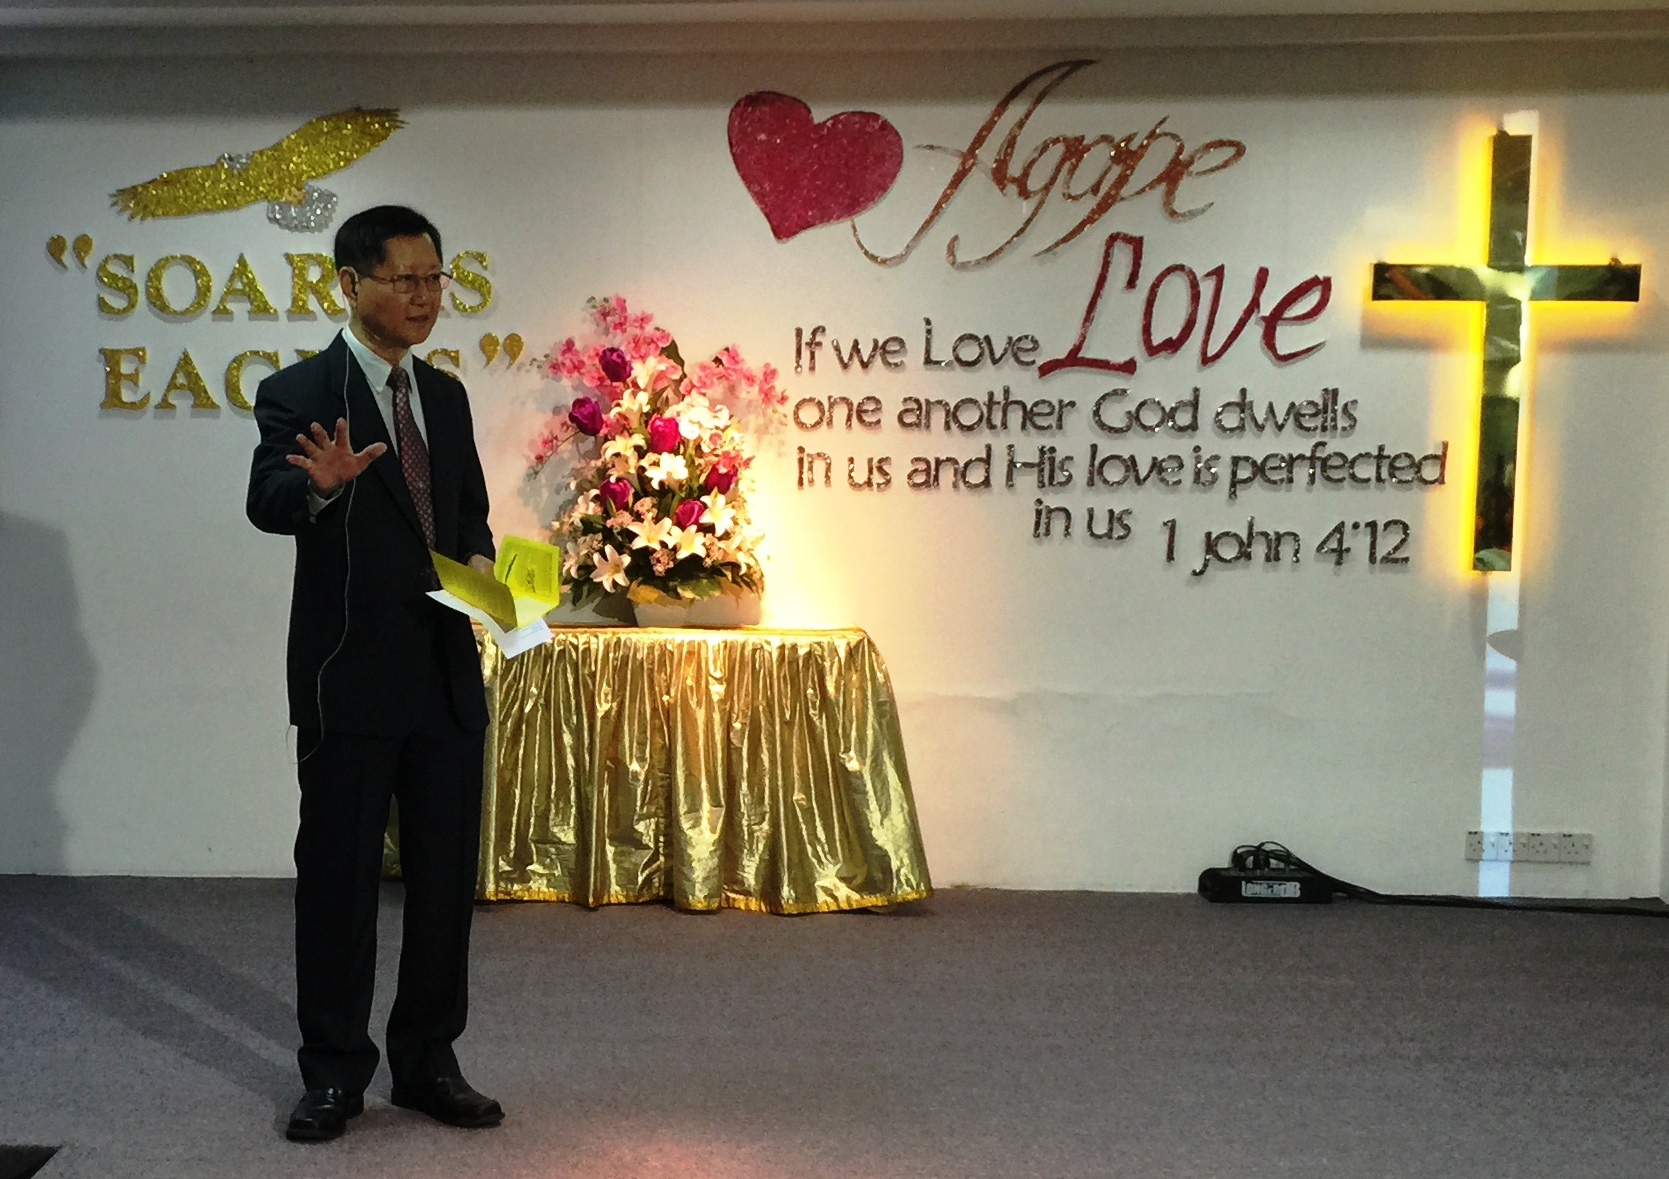 Dr Paul Chen, Senior Pastor.